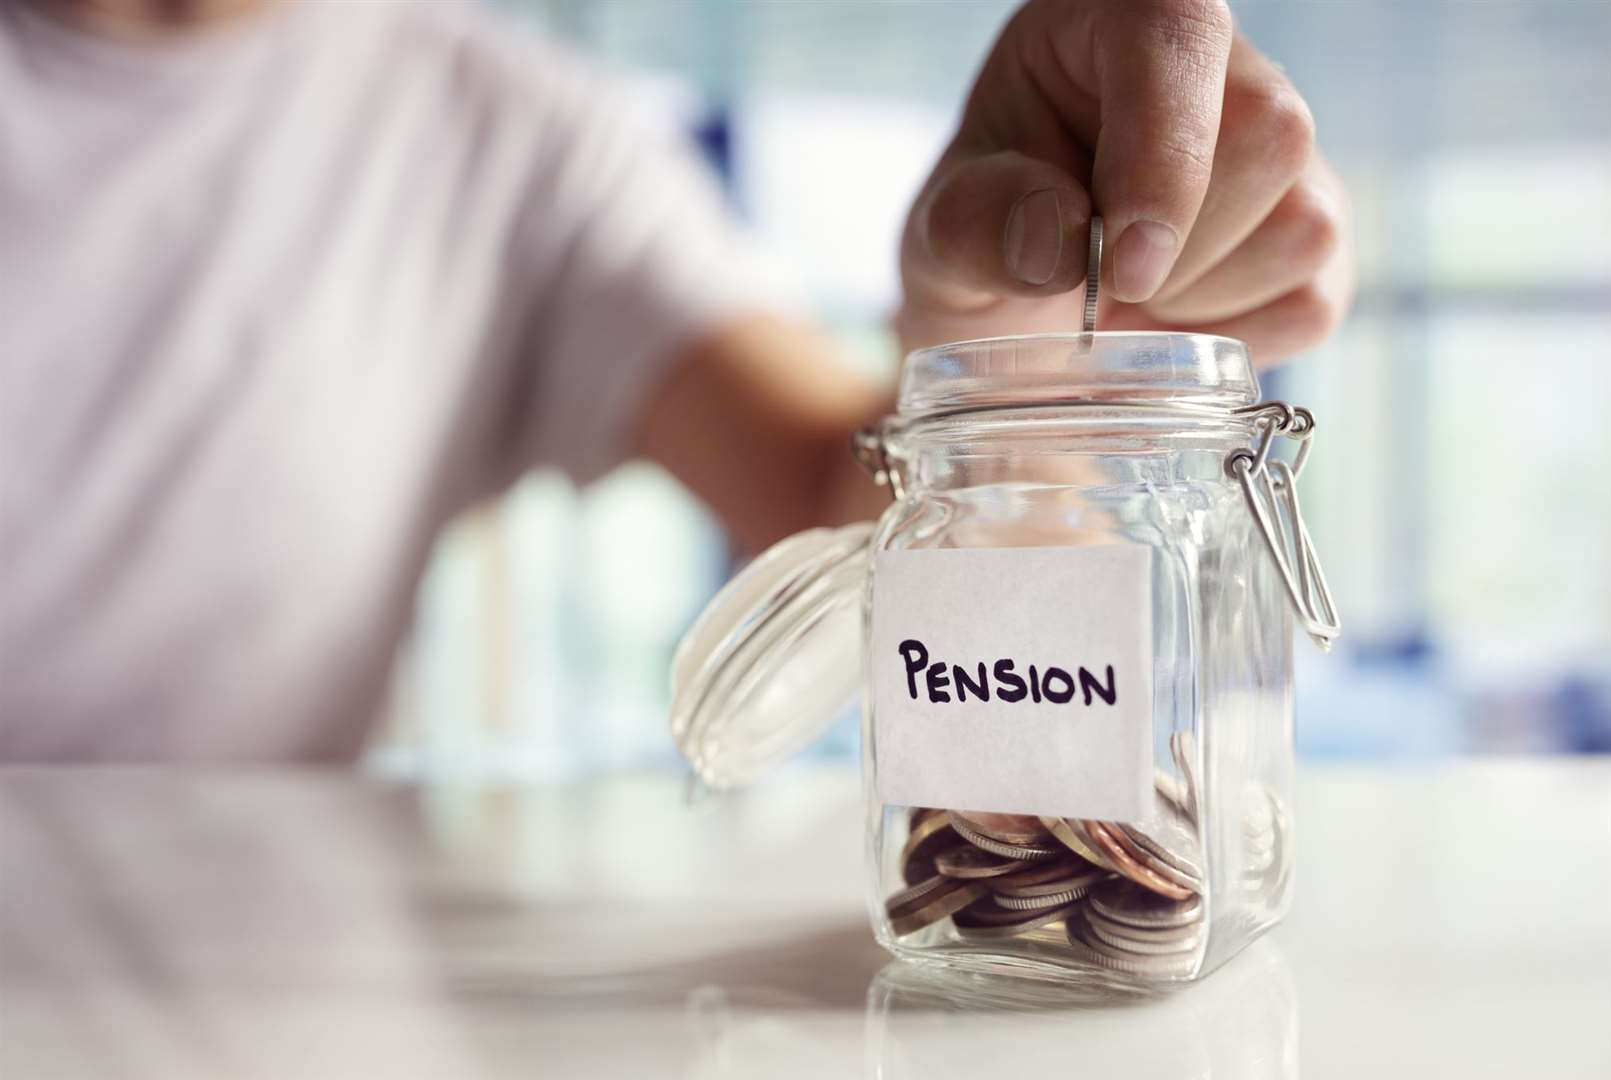 Retirement saving and pension planning. (11727080)